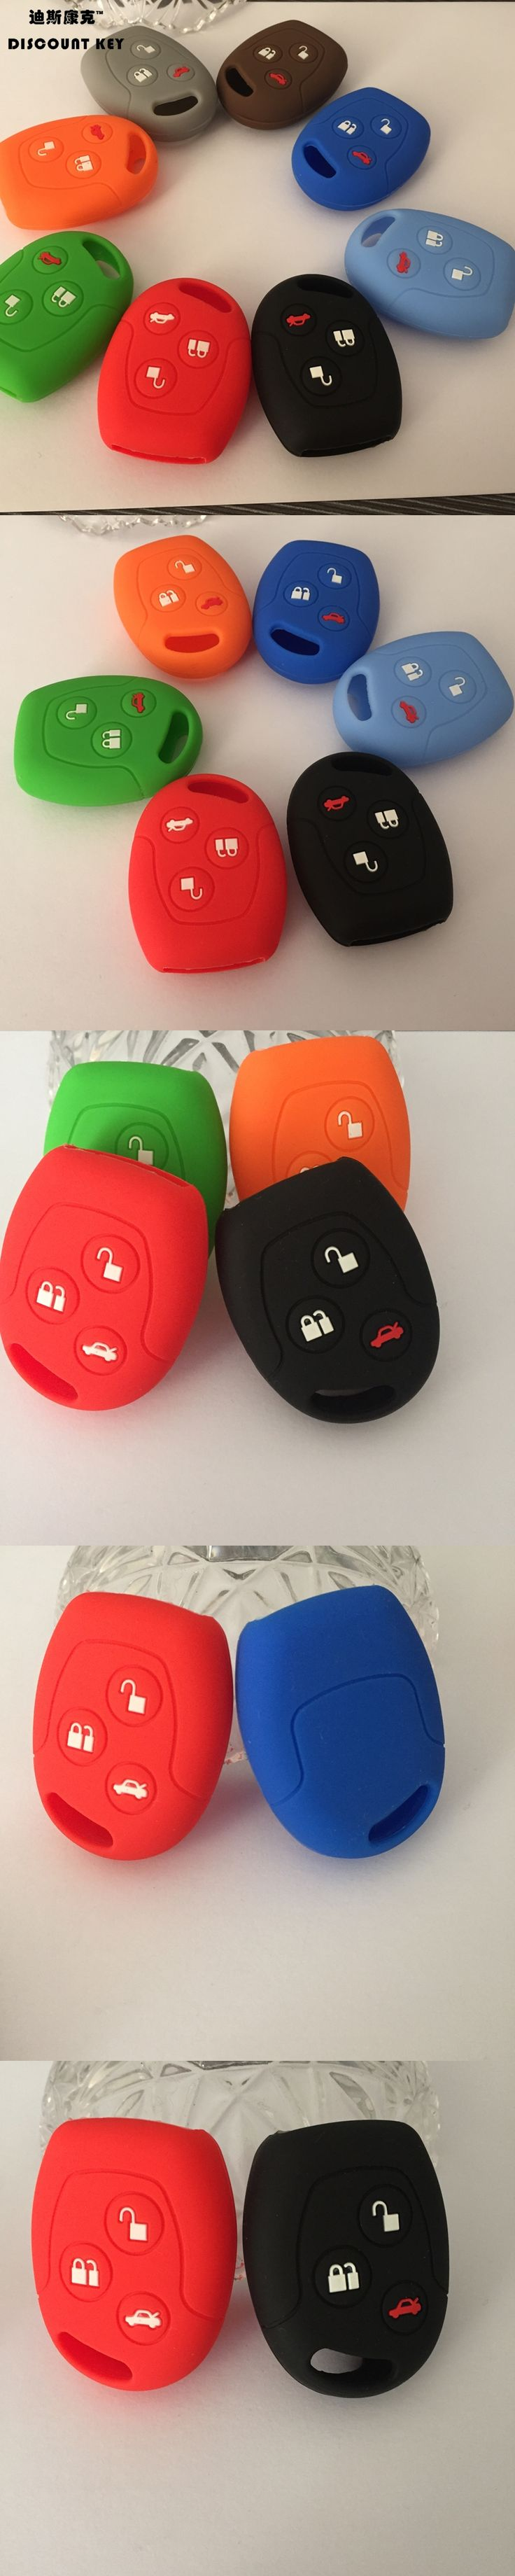 Silicone car key case cover car accessories for  ford Mondeo Fiesta Focus C-Max KA 3 buttons remote case